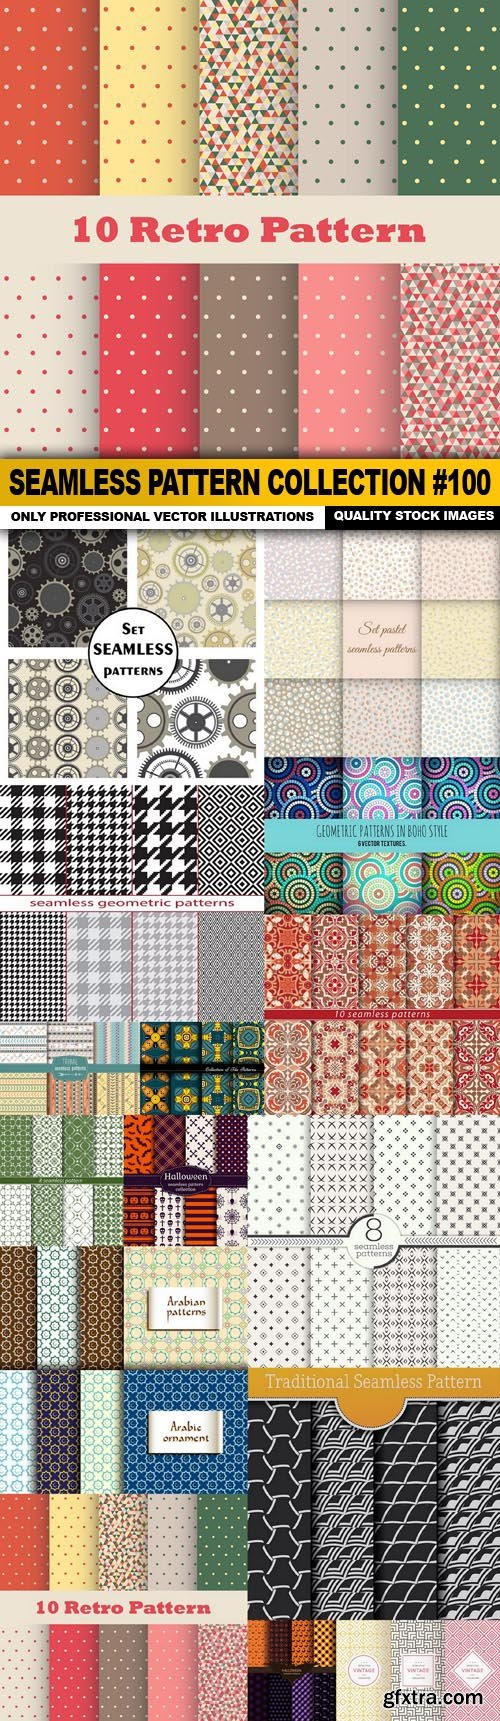 Seamless Pattern Collection #100 - 15 Vector